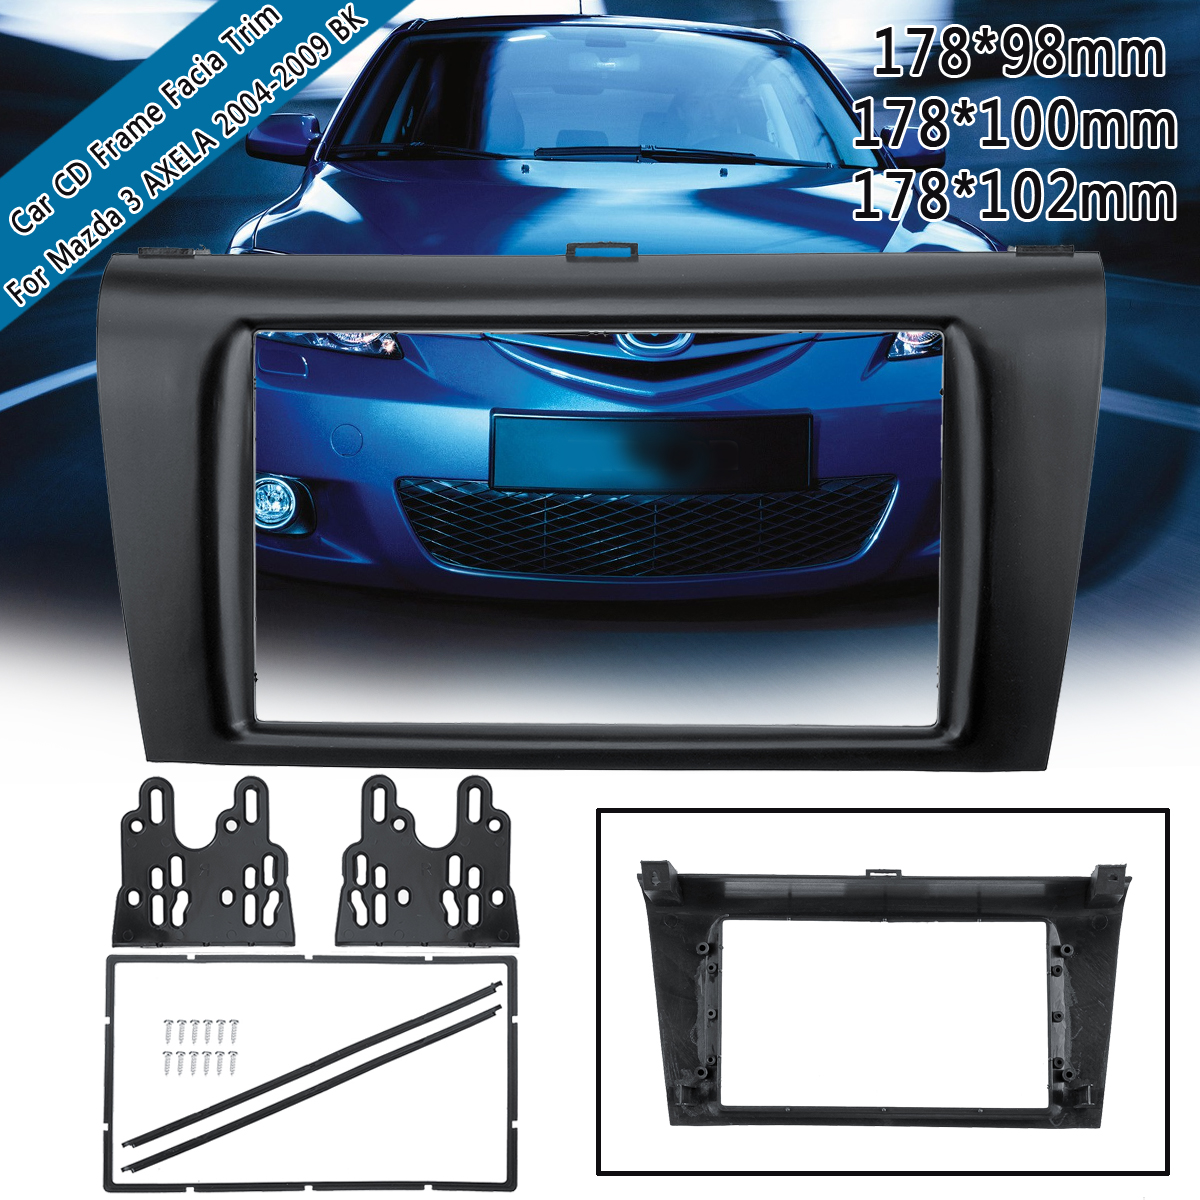 2DIN Car Stereo <font><b>Radio</b></font> DVD Fascia Panel Plate Trim Kit Frame For <font><b>Mazda</b></font> <font><b>3</b></font> AXELA 2004 2005 <font><b>2006</b></font> 2007-2009 178x98/ 178x100/ 178x102m image